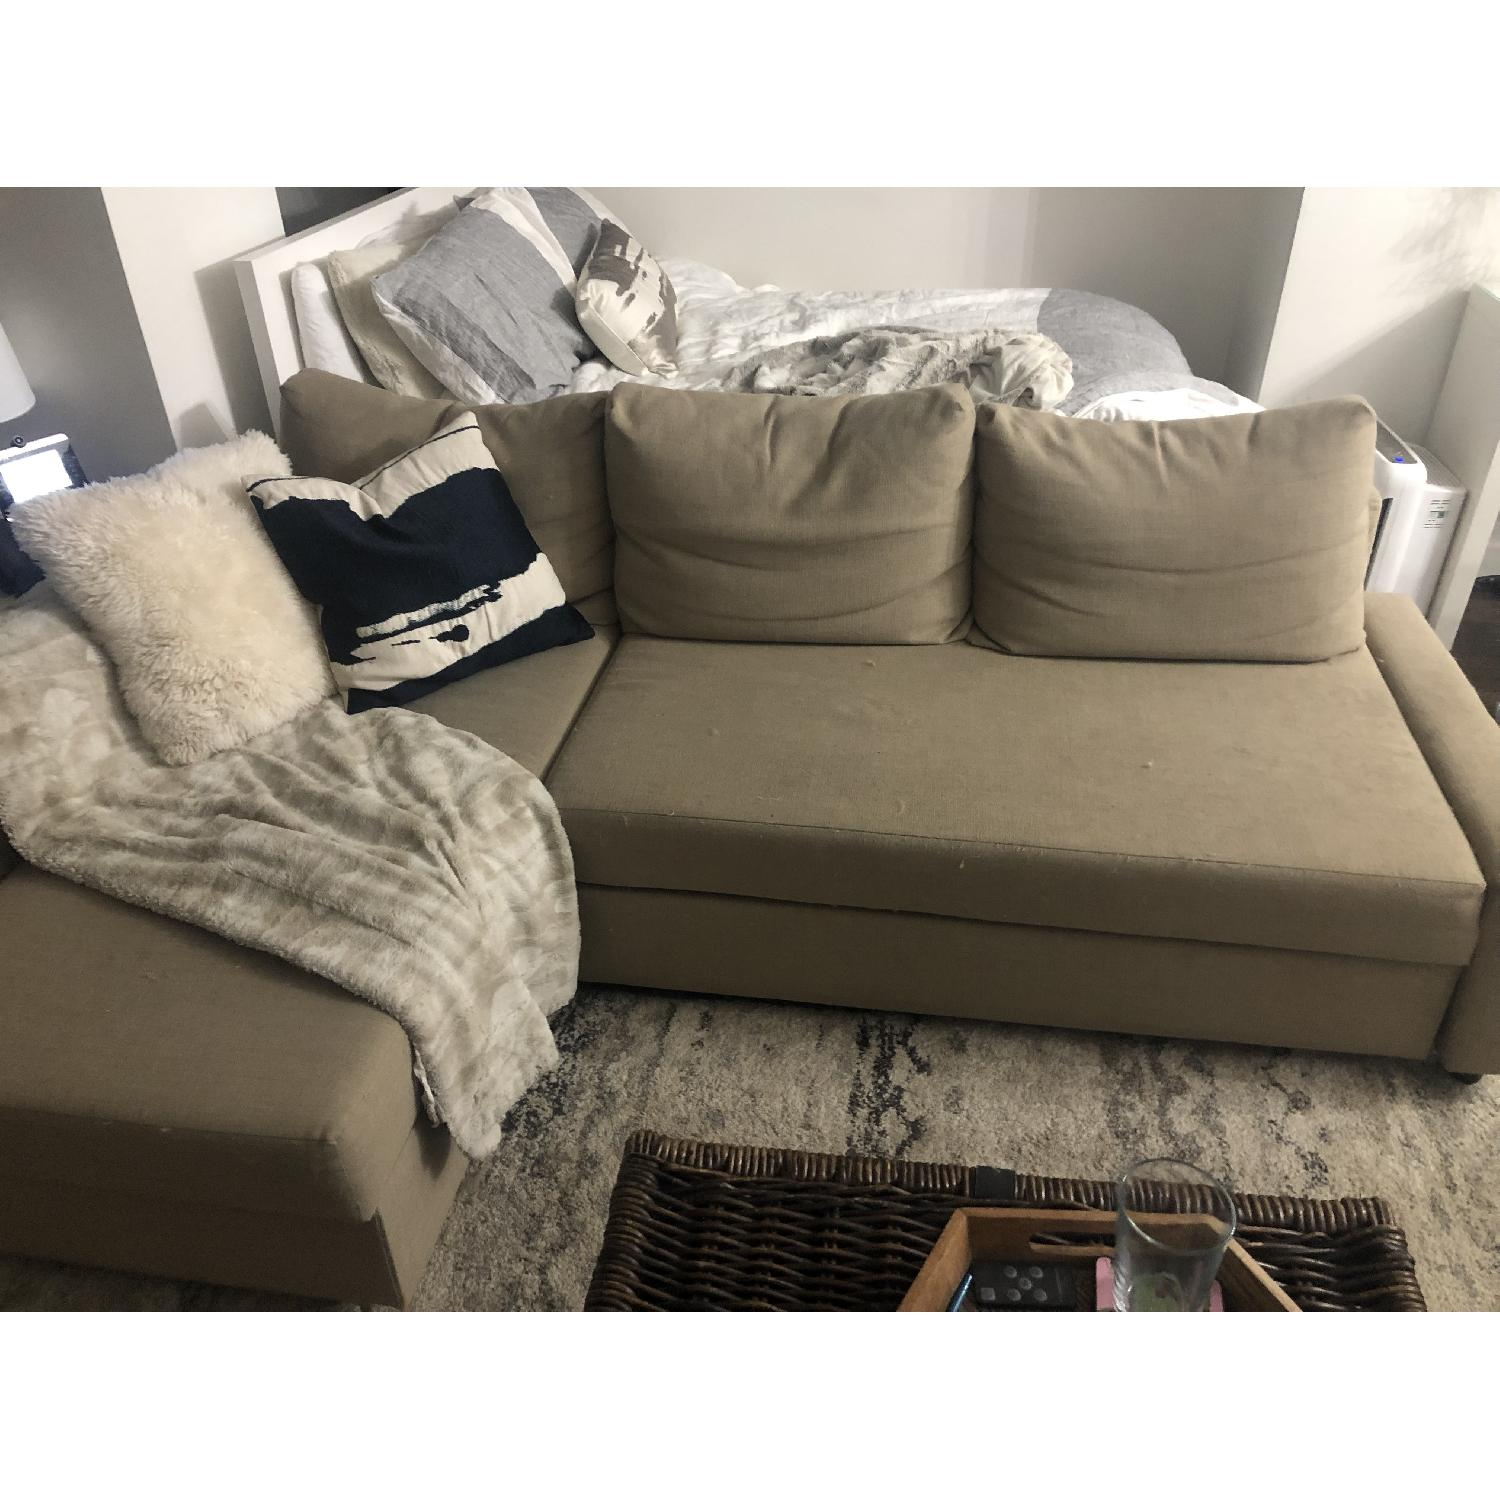 Remarkable Ikea Friheten Sleeper Sectional Sofa W Storage Aptdeco Machost Co Dining Chair Design Ideas Machostcouk